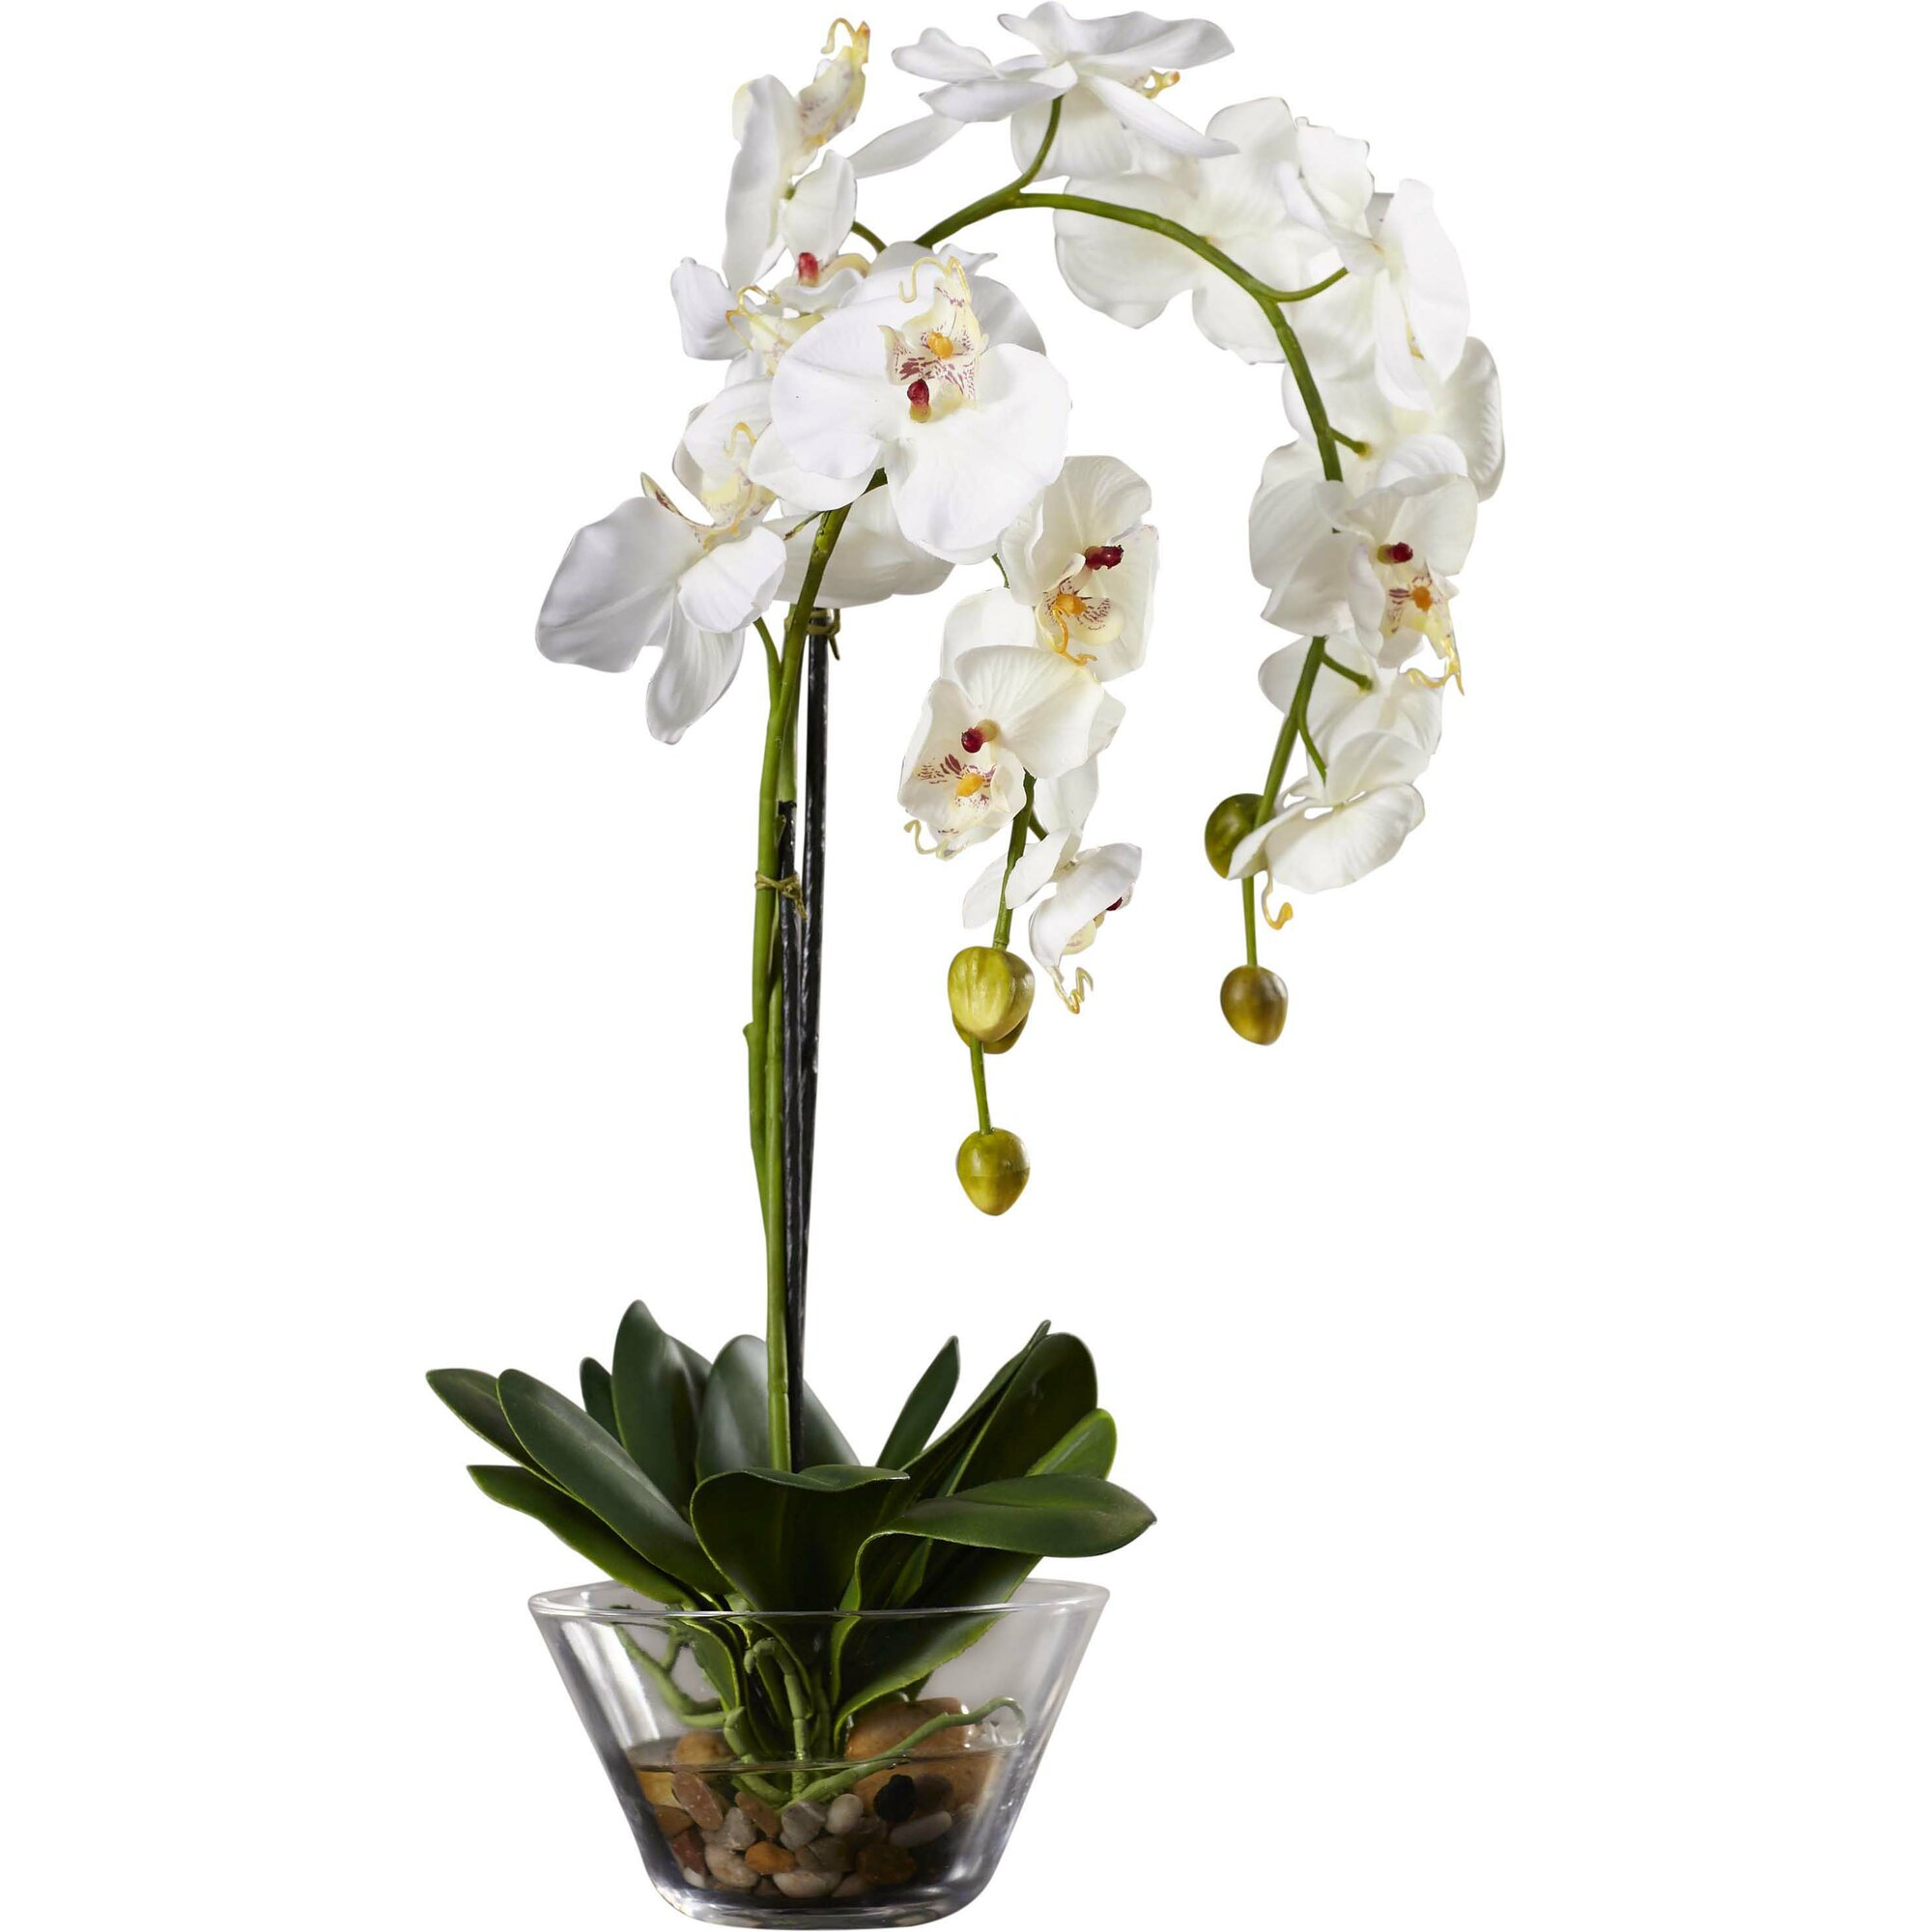 A Bouquet Of White And Purple Orchids In Vase The Is Standing On